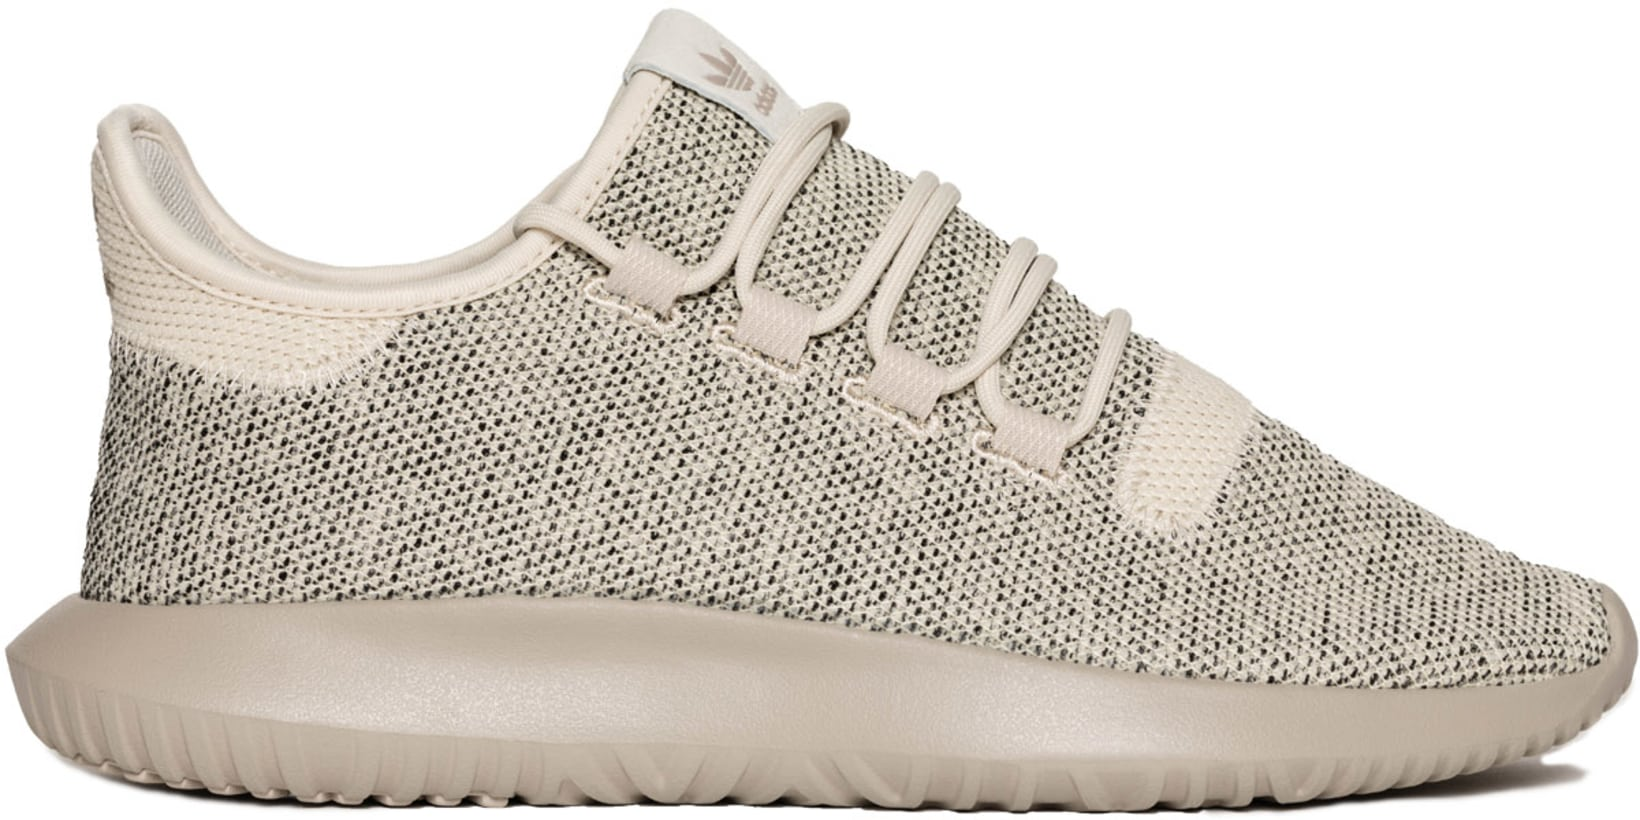 4d479297382 adidas Originals. Tubular Shadow Knit Sneakers - Clear Brown Light Brown Core  Black